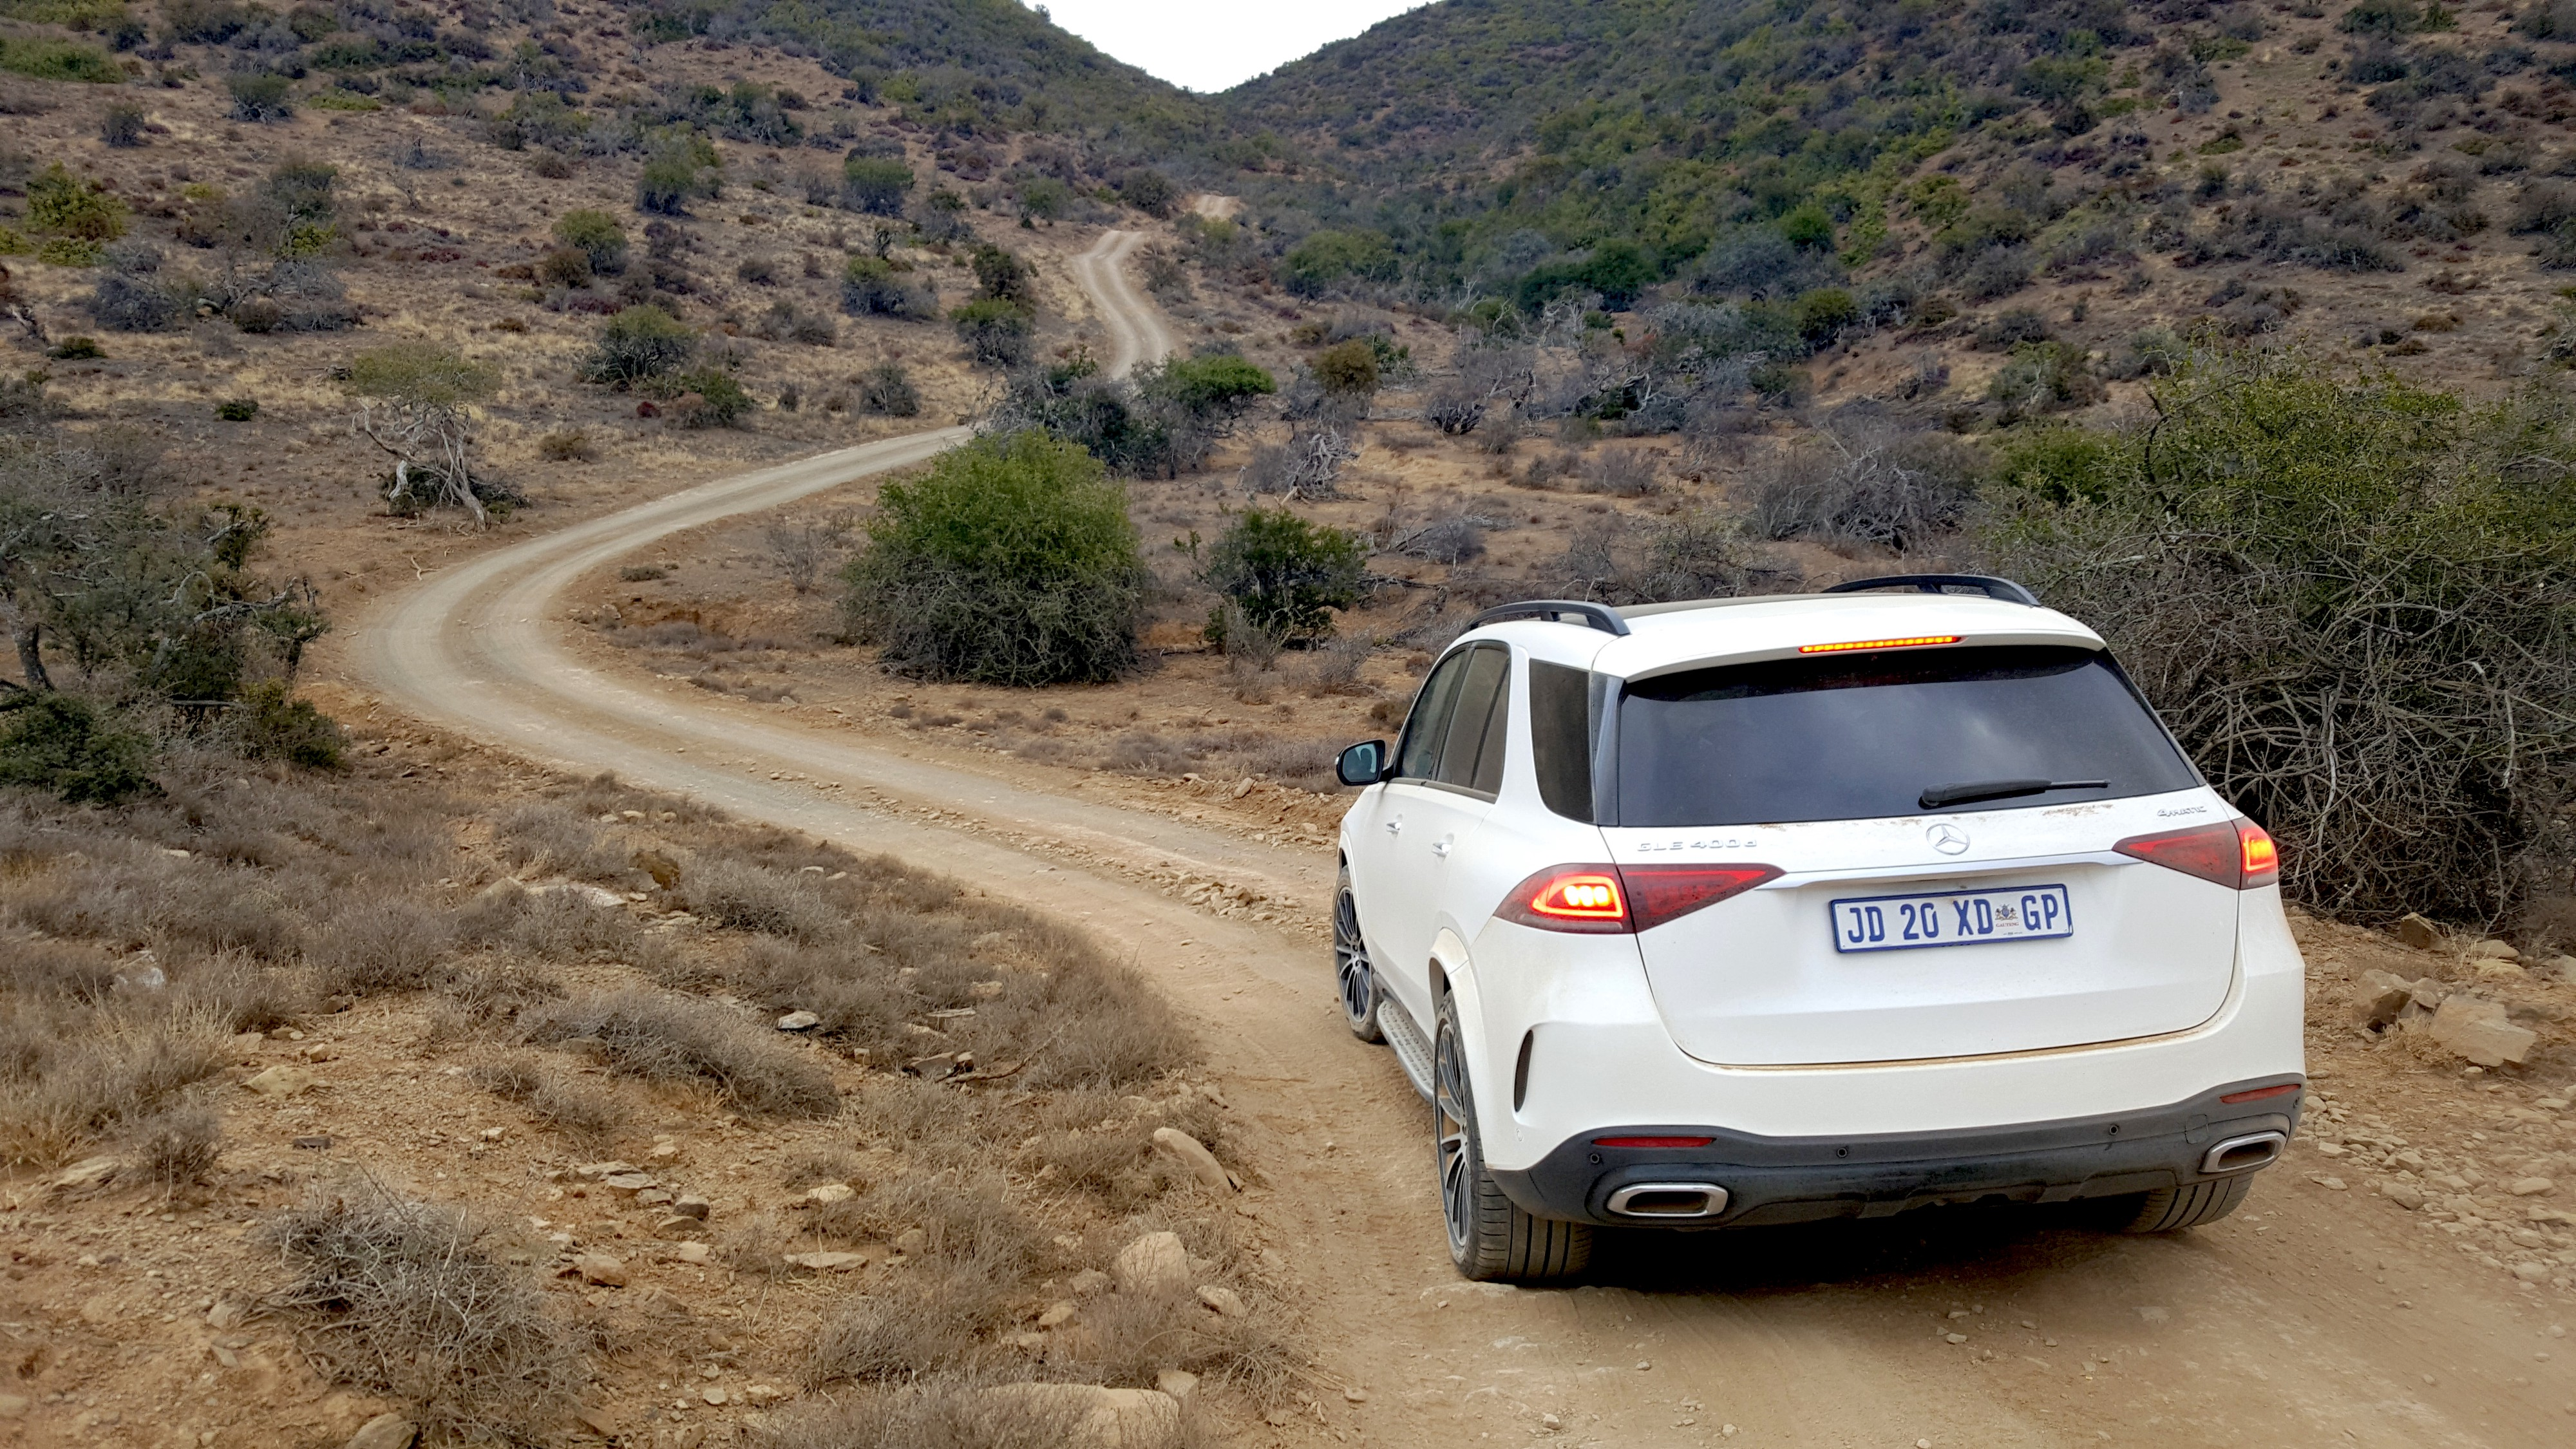 Mercedes-Benz GLE 400d being driven on a dirt road